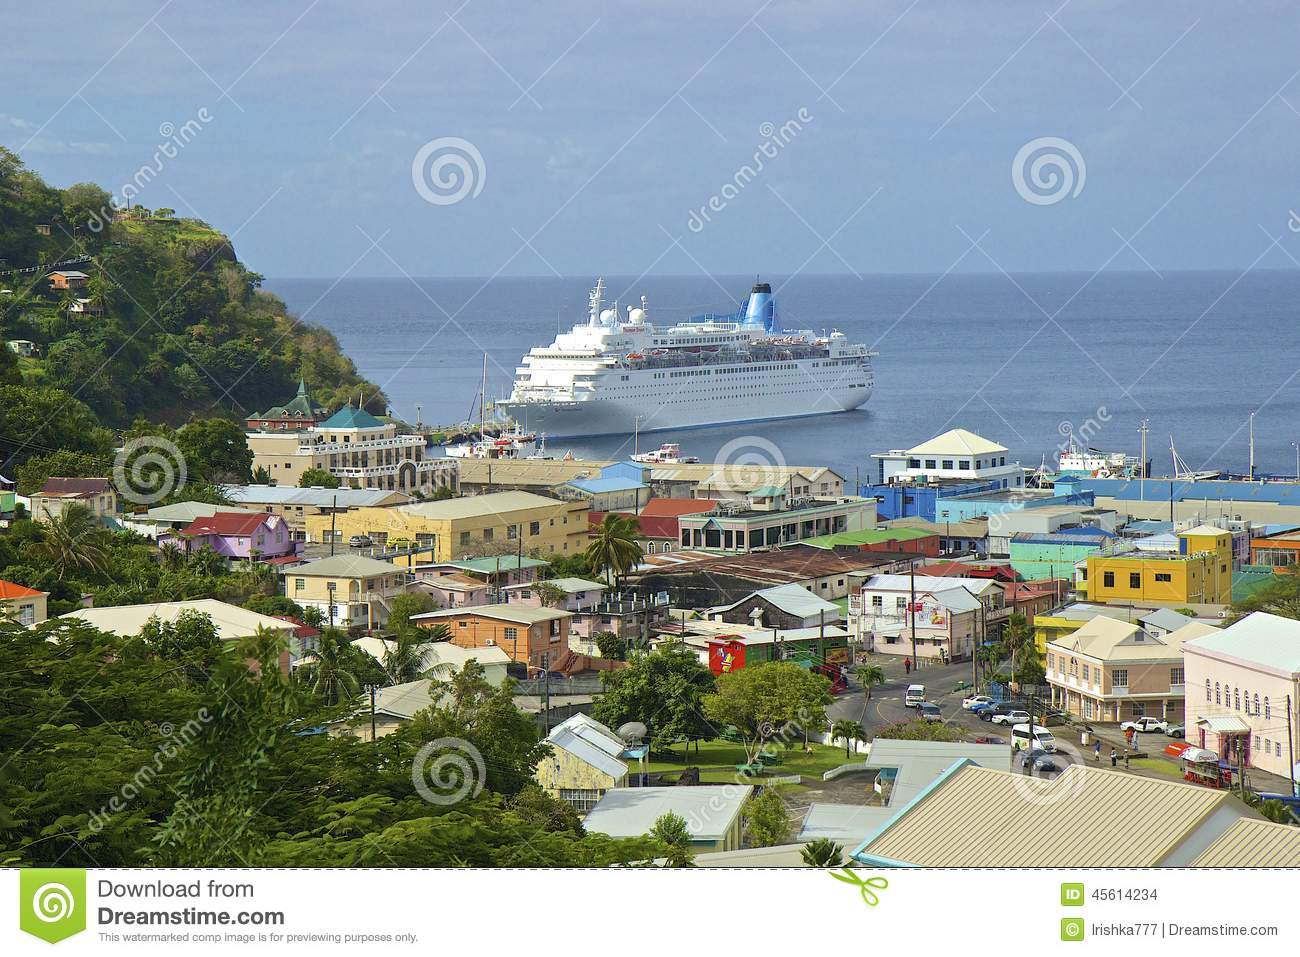 Cruiseschip in Kingstown-haven in St Vincent